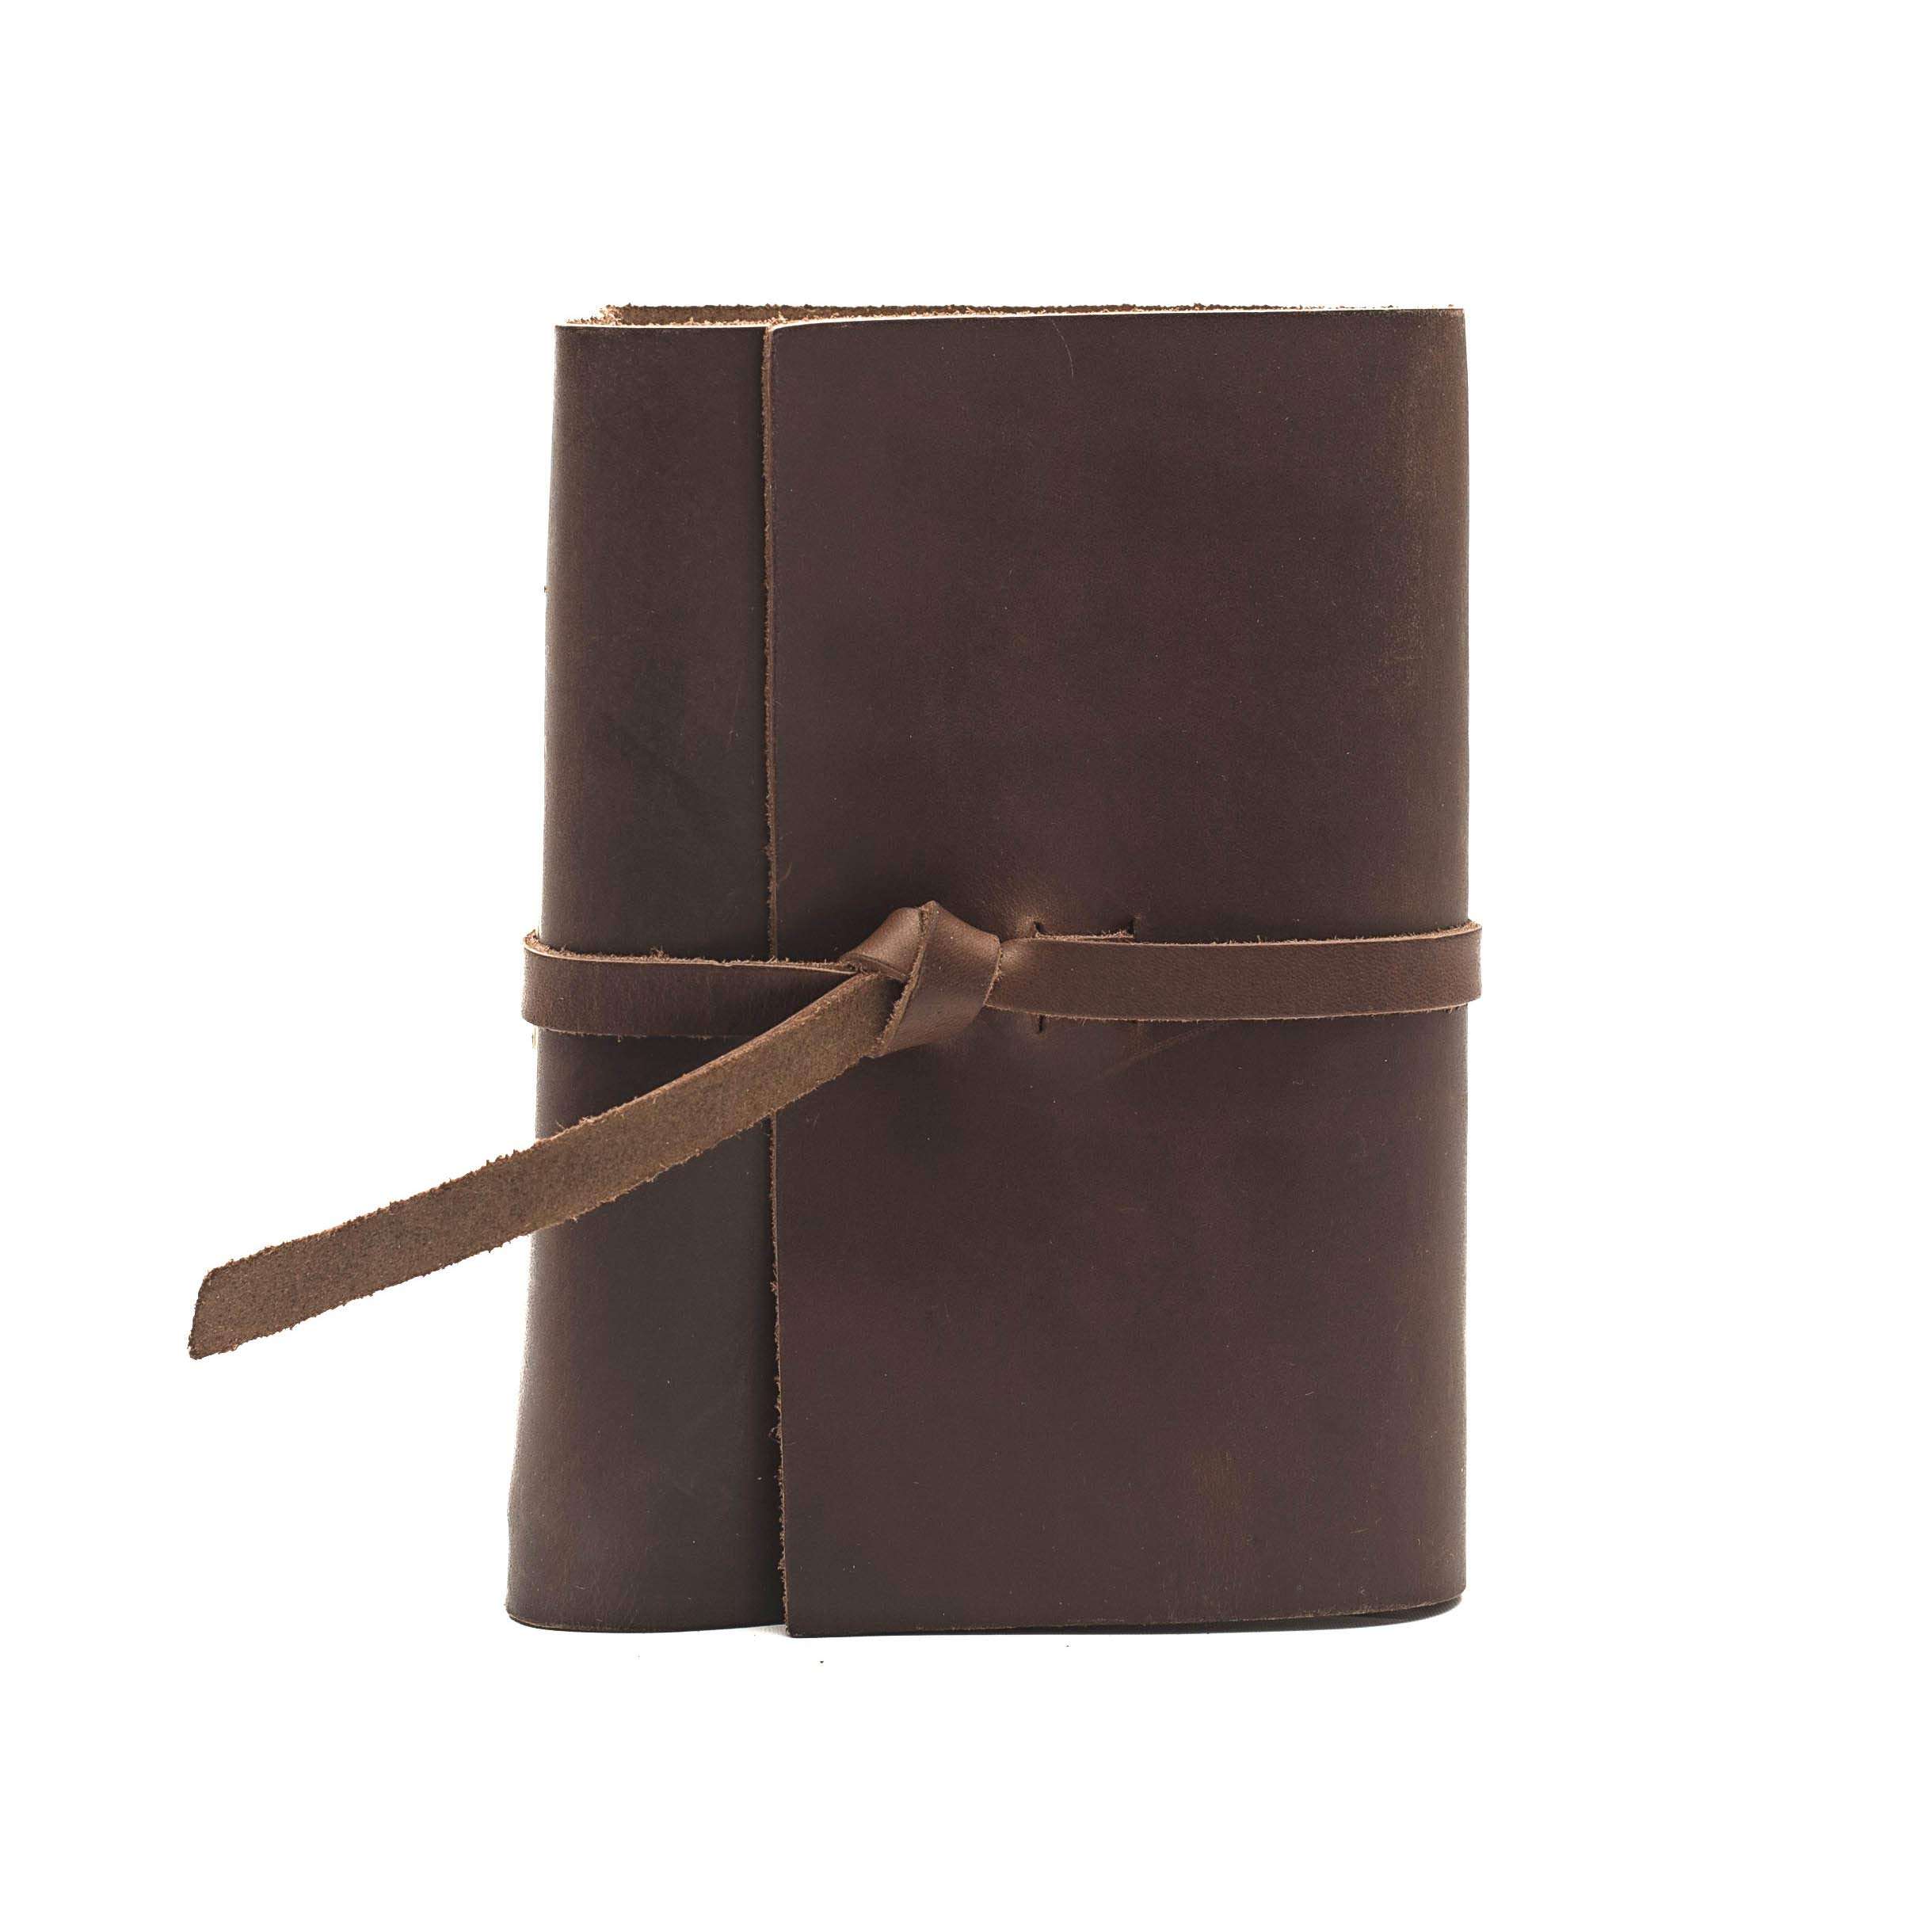 Rustico Premium Handcrafted Top Grain Leather Photo Album for 4x6 Photos with Old World Style Flap Closure